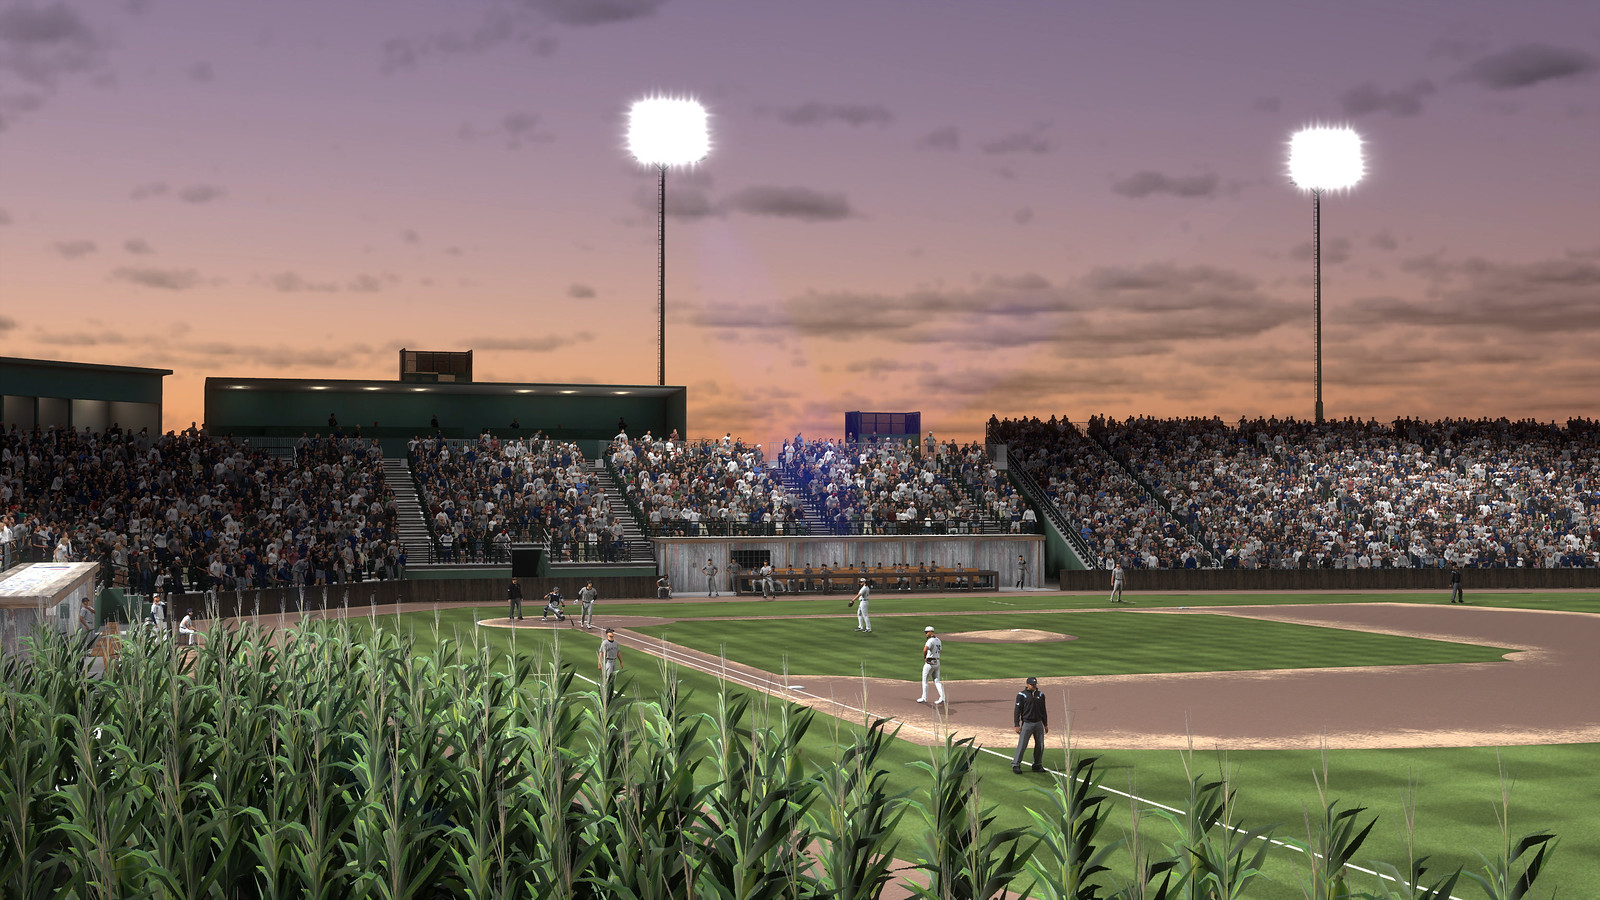 The view from right field foul territory, overlooking corn, at the Field of Dreams in MLB The Show 21